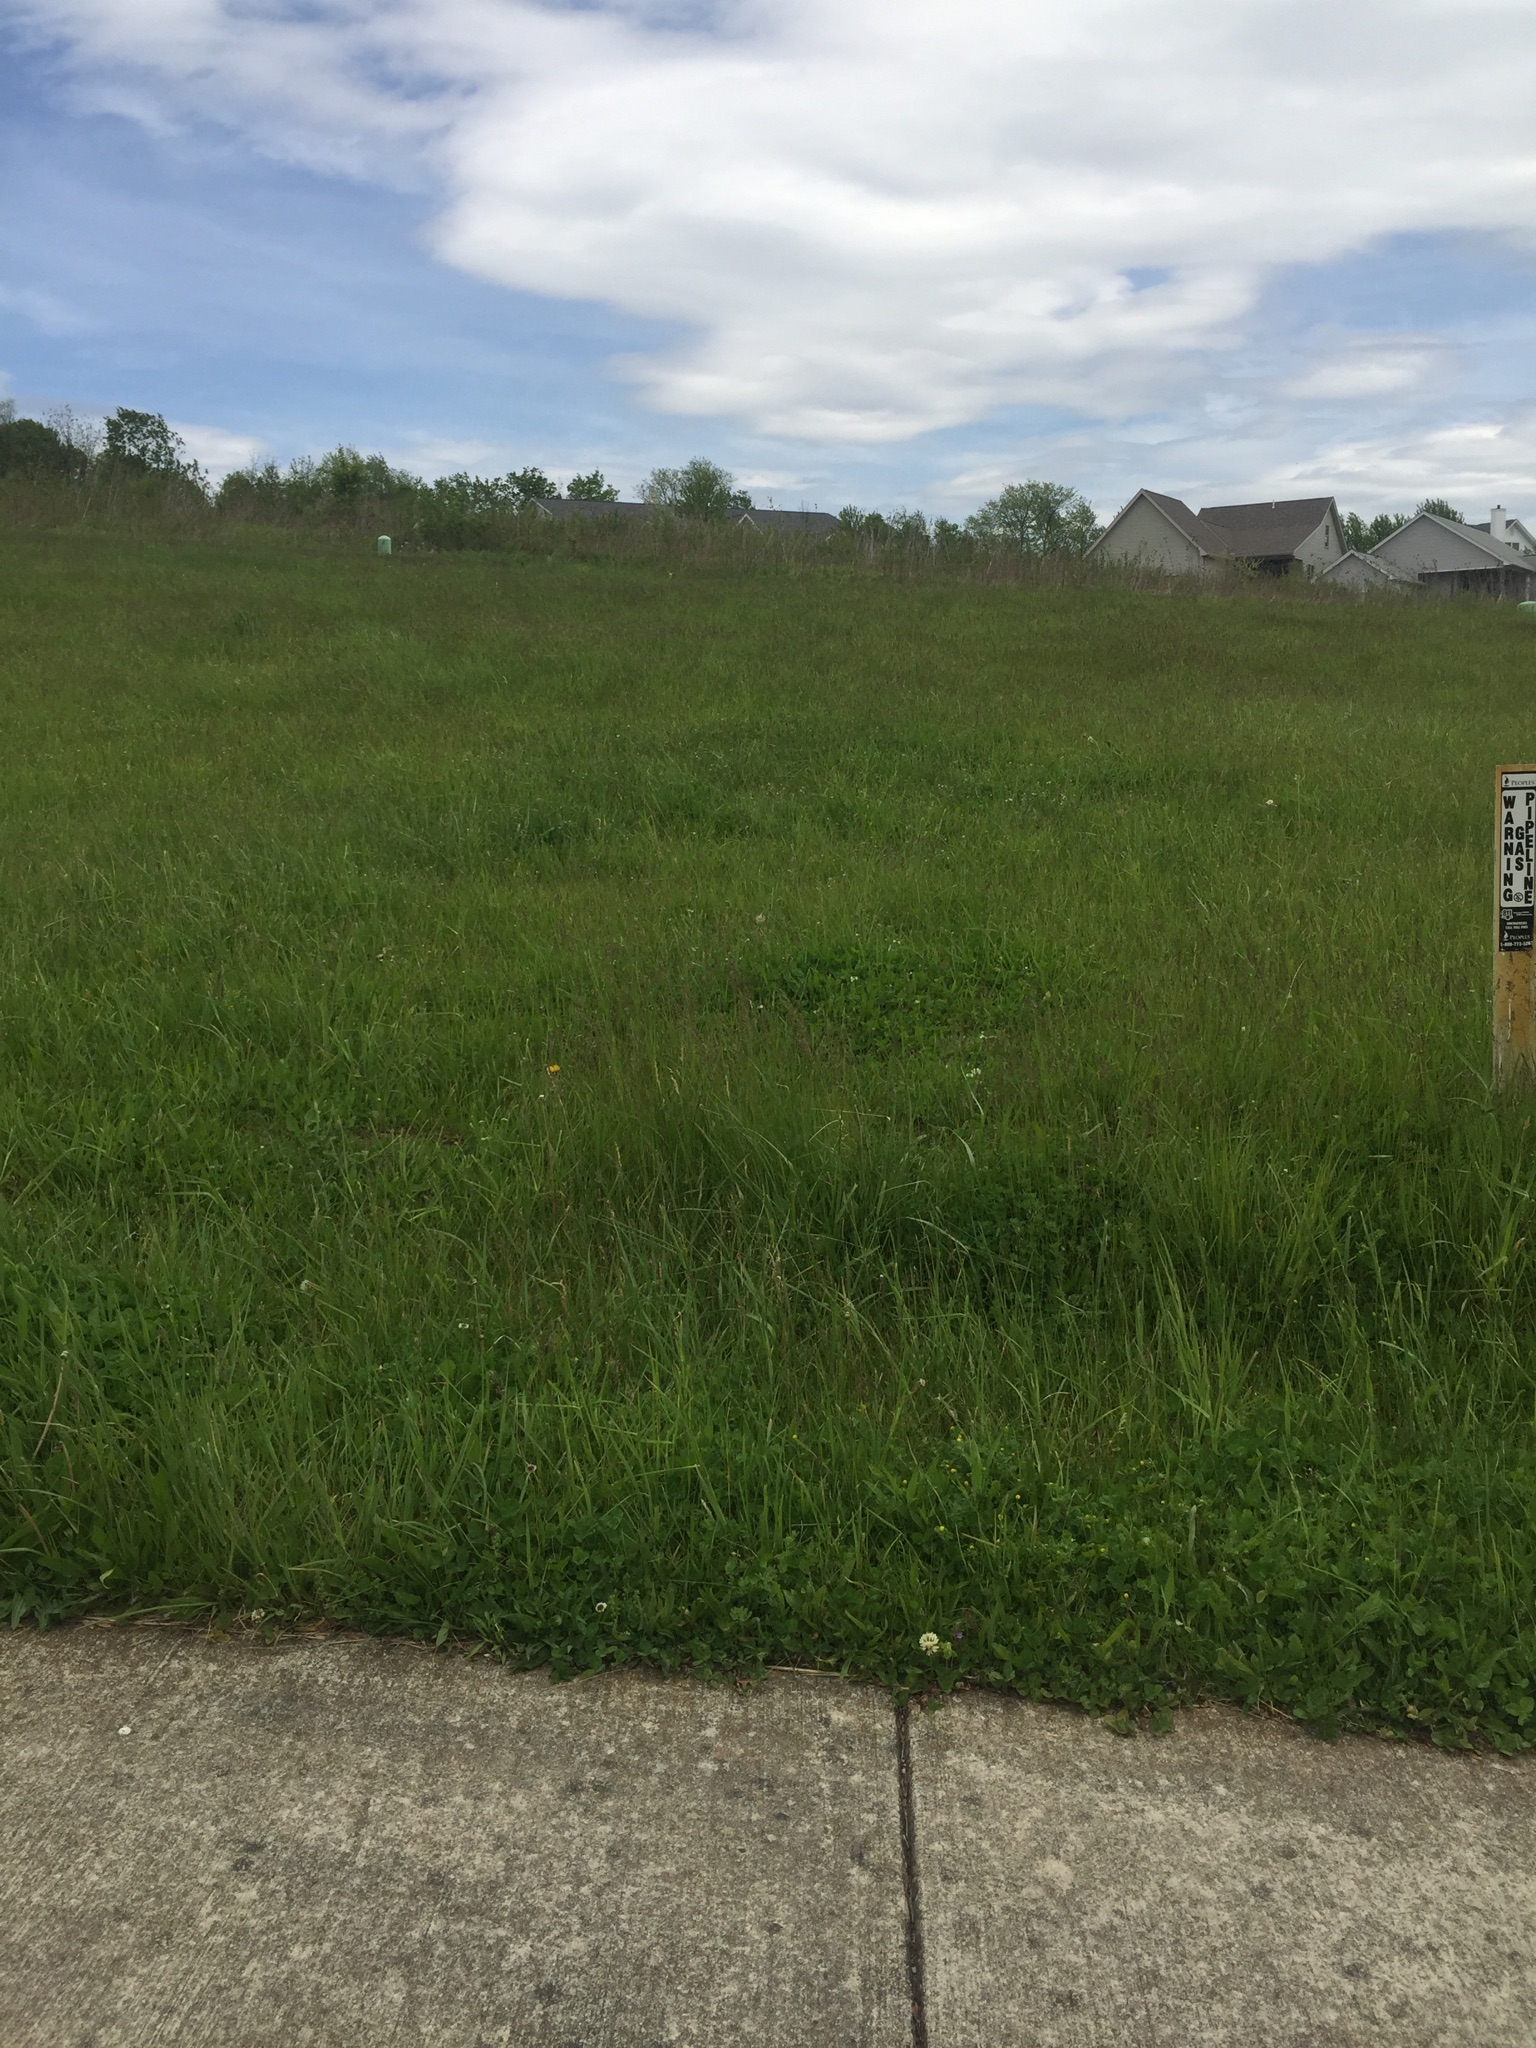 Building Lots for Sale!   Starting at $49,900